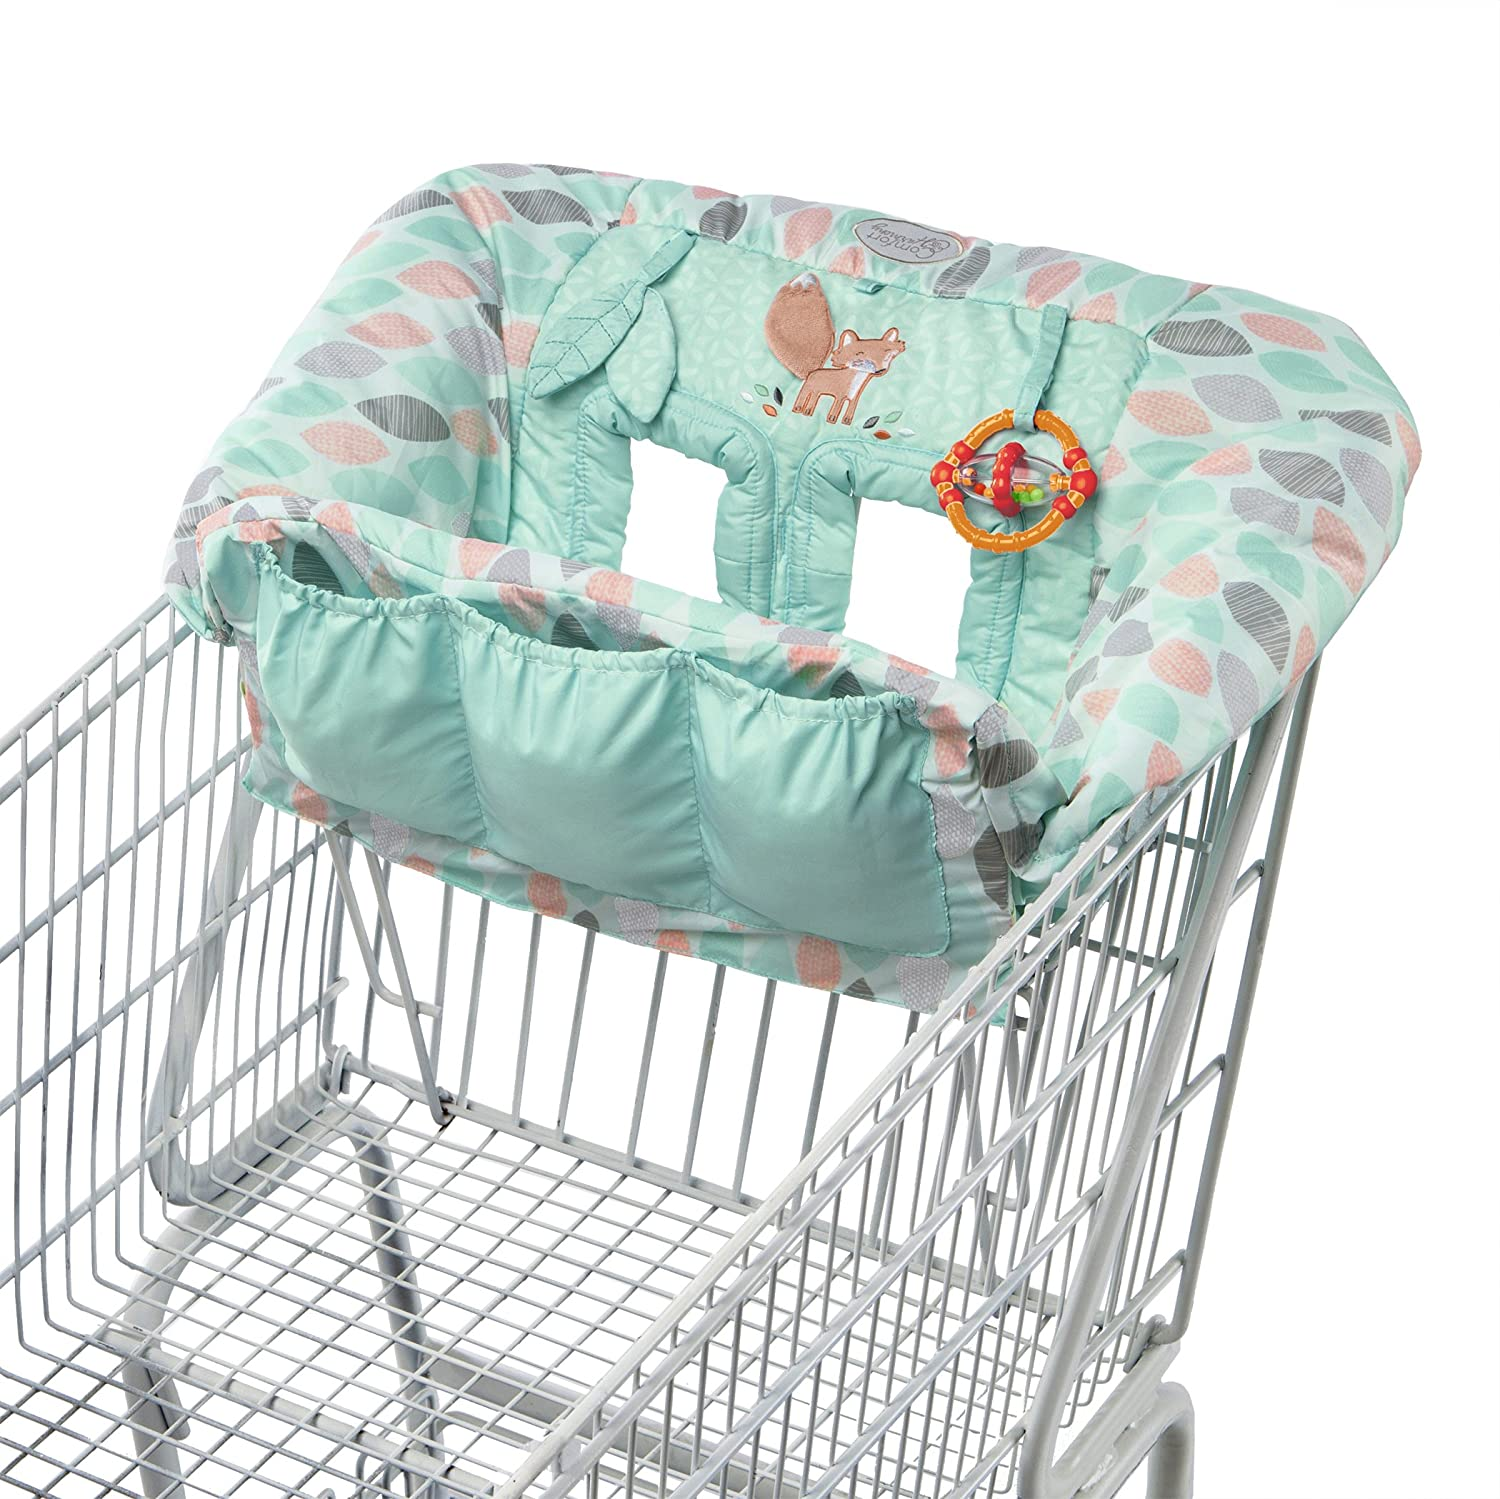 Comfort & Harmony Playtime Cozy Cart Cover, Foxtrot Leaves KidsII 60495-4